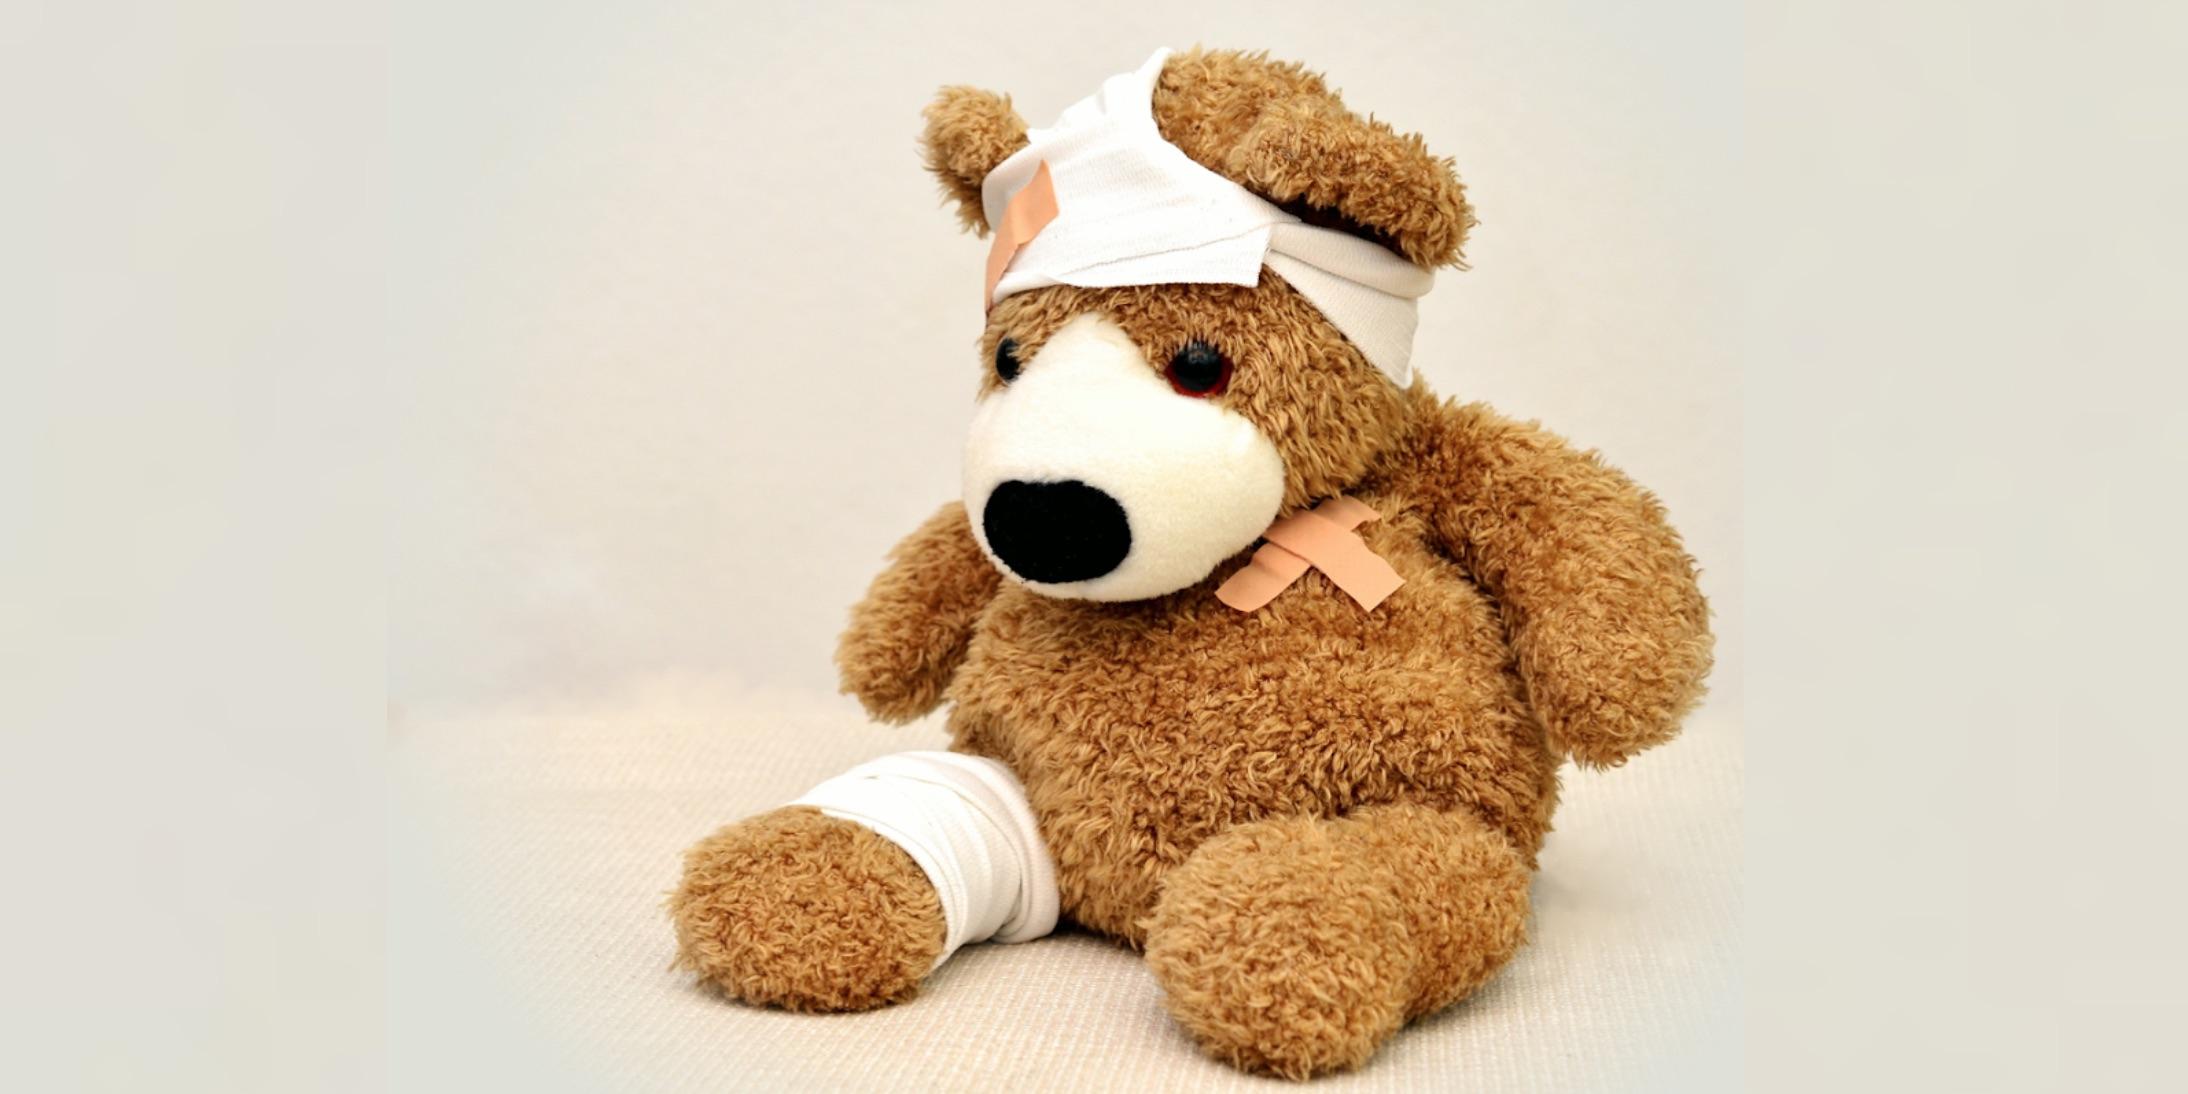 First Aid for Kids | Tips for Common Situations